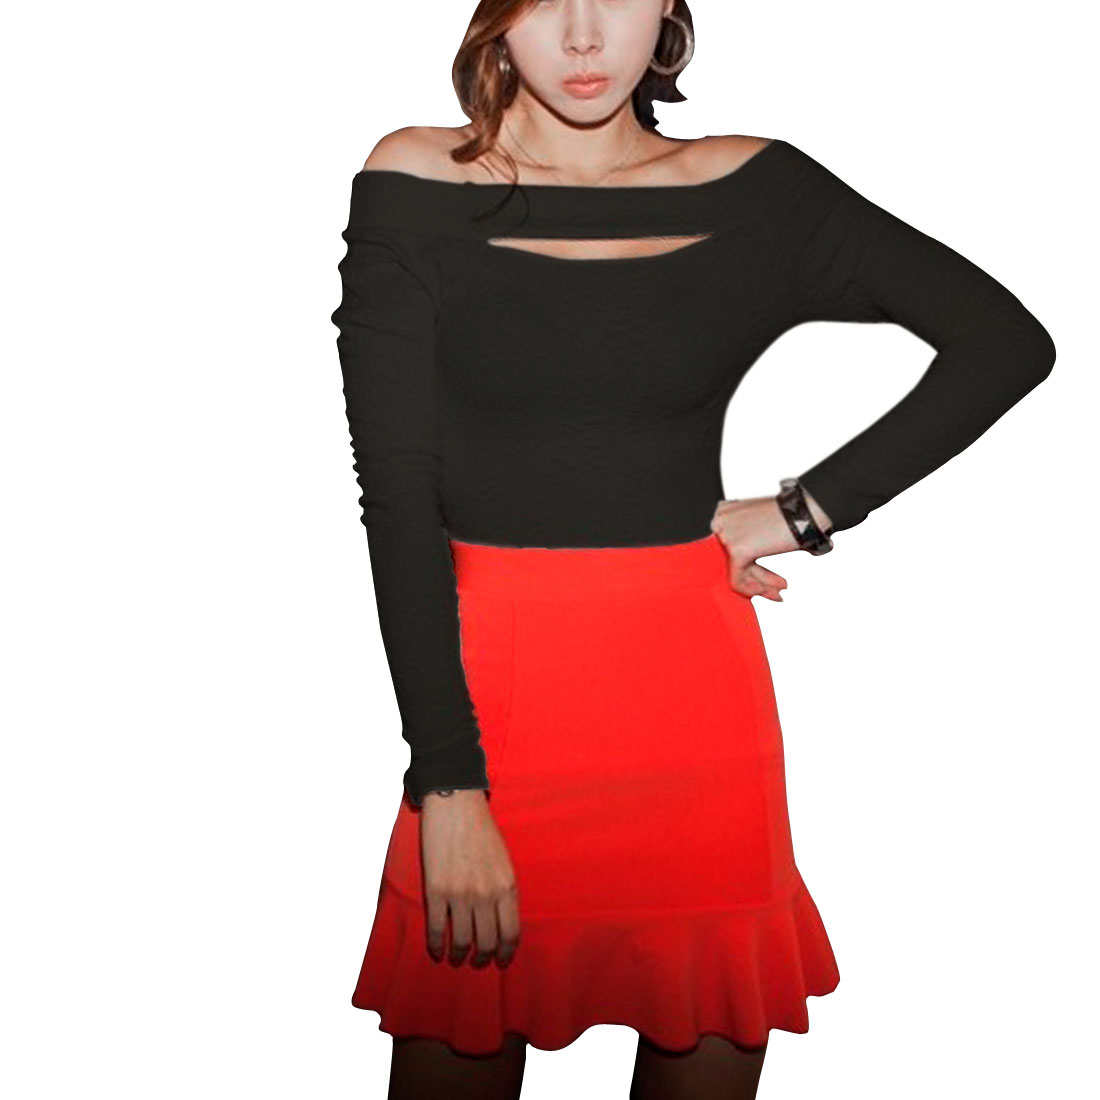 Ladies Black Boat Neck Cut Out Front Stretchy Autumn Tee Shirt XS